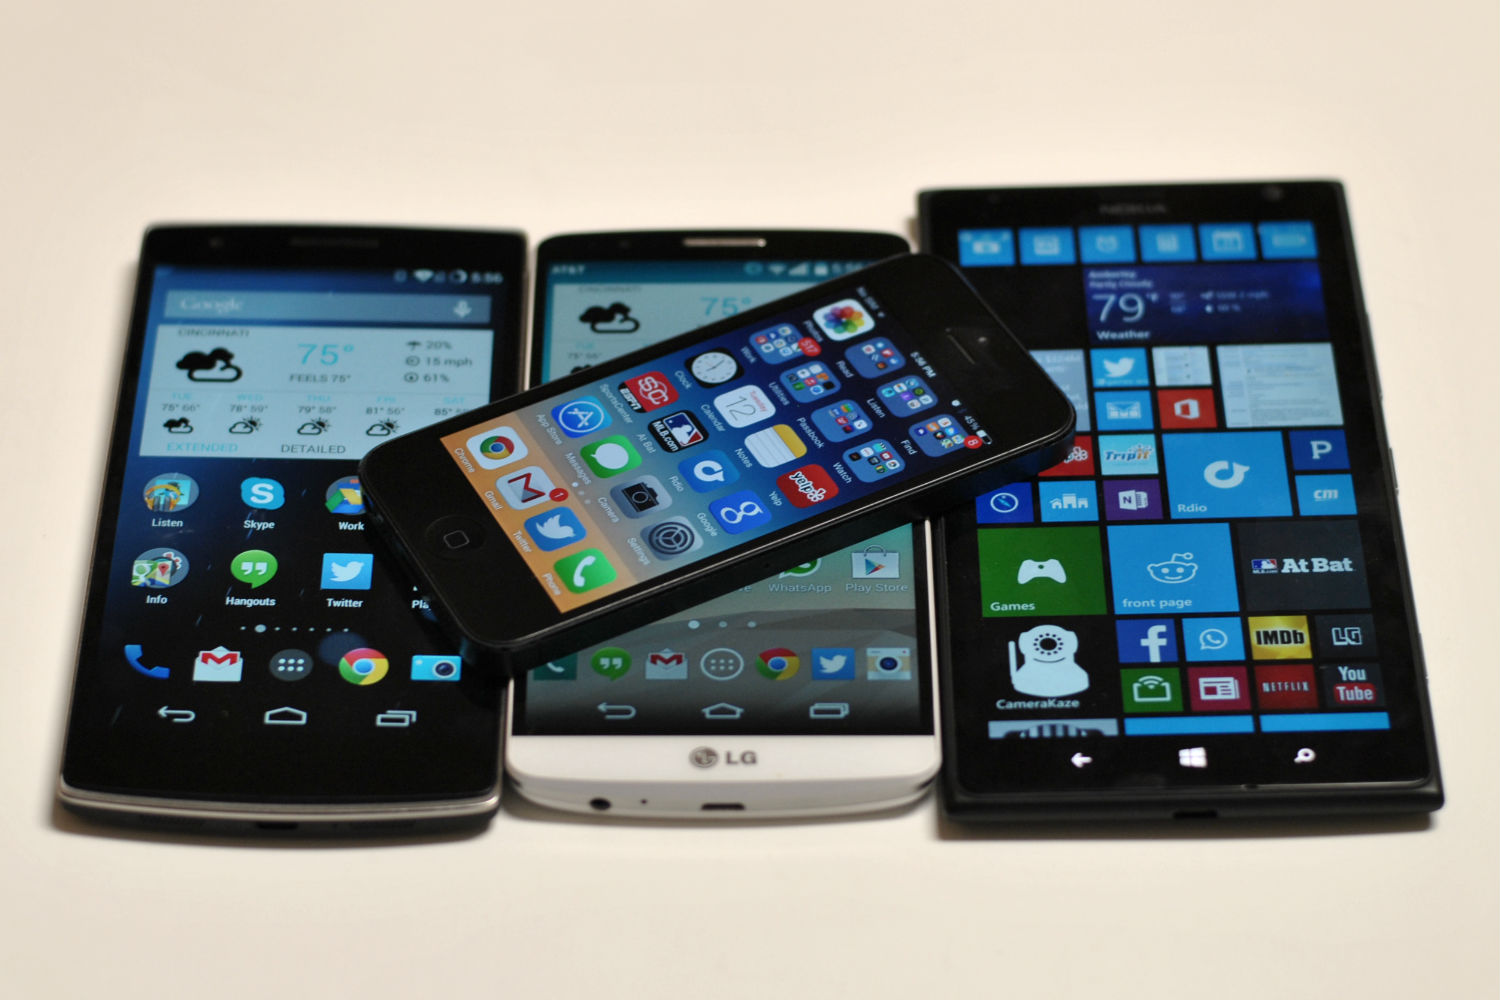 Left to right: OnePlus One, Apple iPhone (above), LG G3, Nokia Lumia 1520